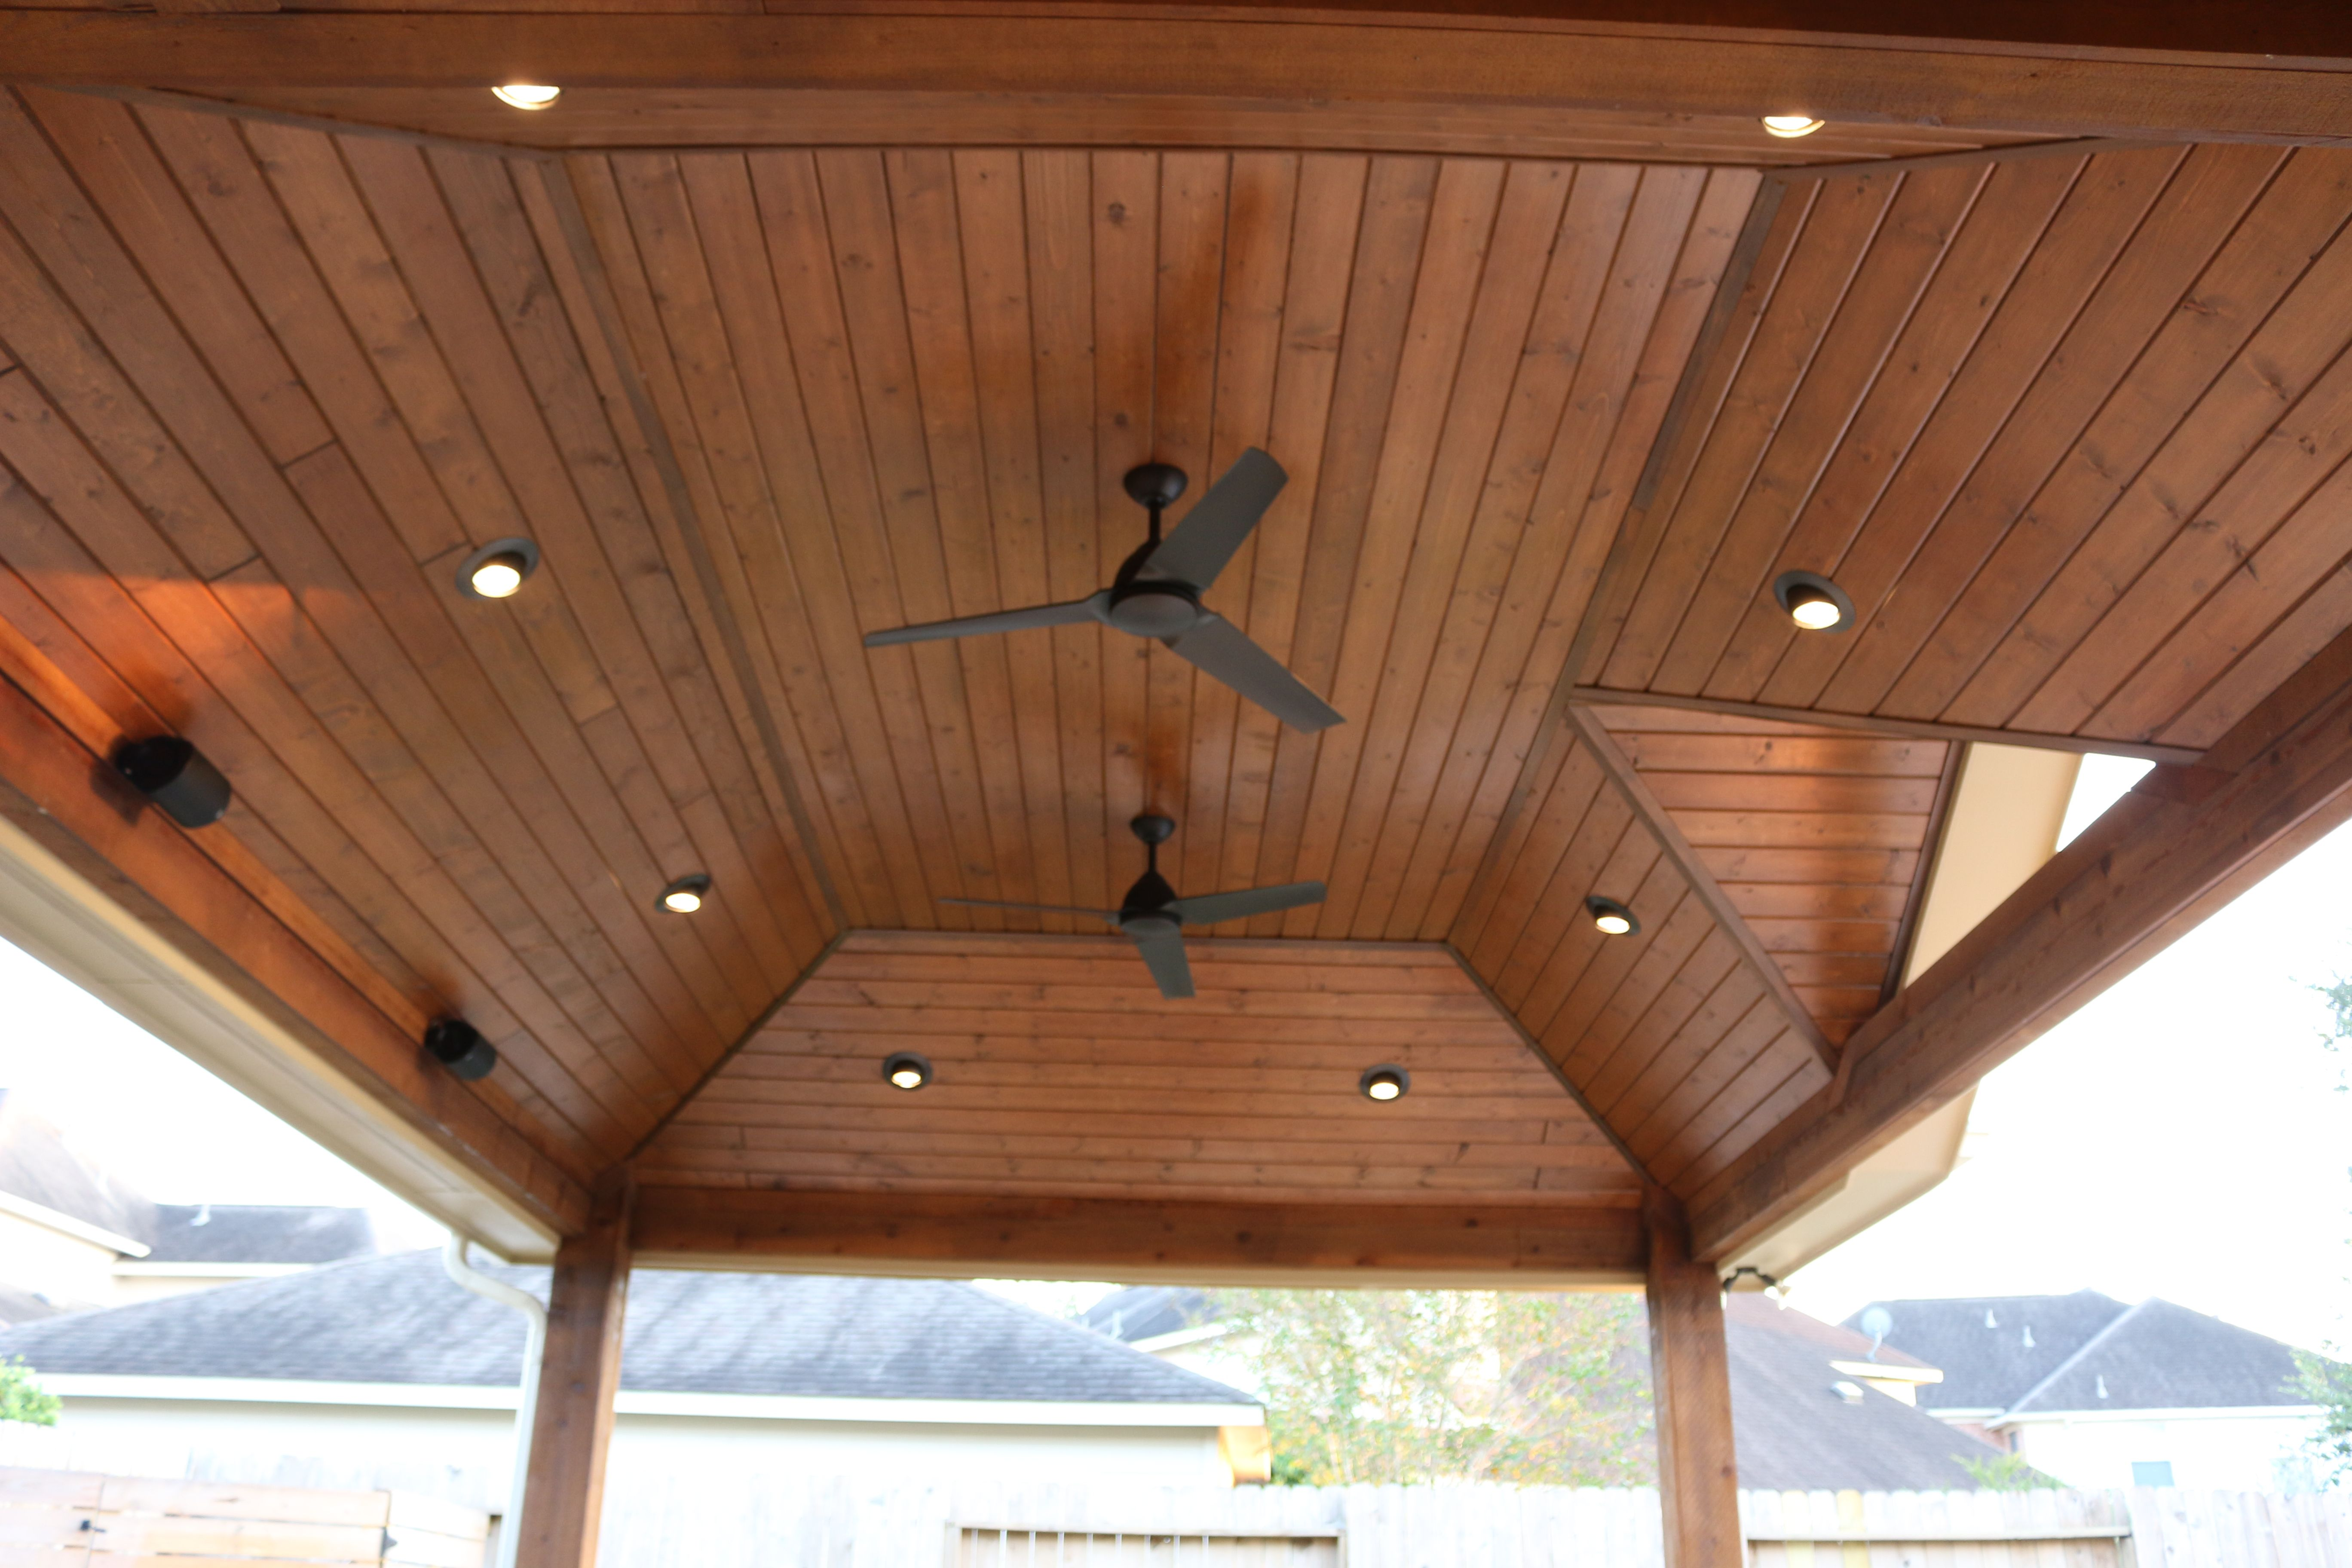 Pre Stained Tongue And Groove Pine Ceiling, Recessed Lighting, Outdoor  Ceiling Fans In